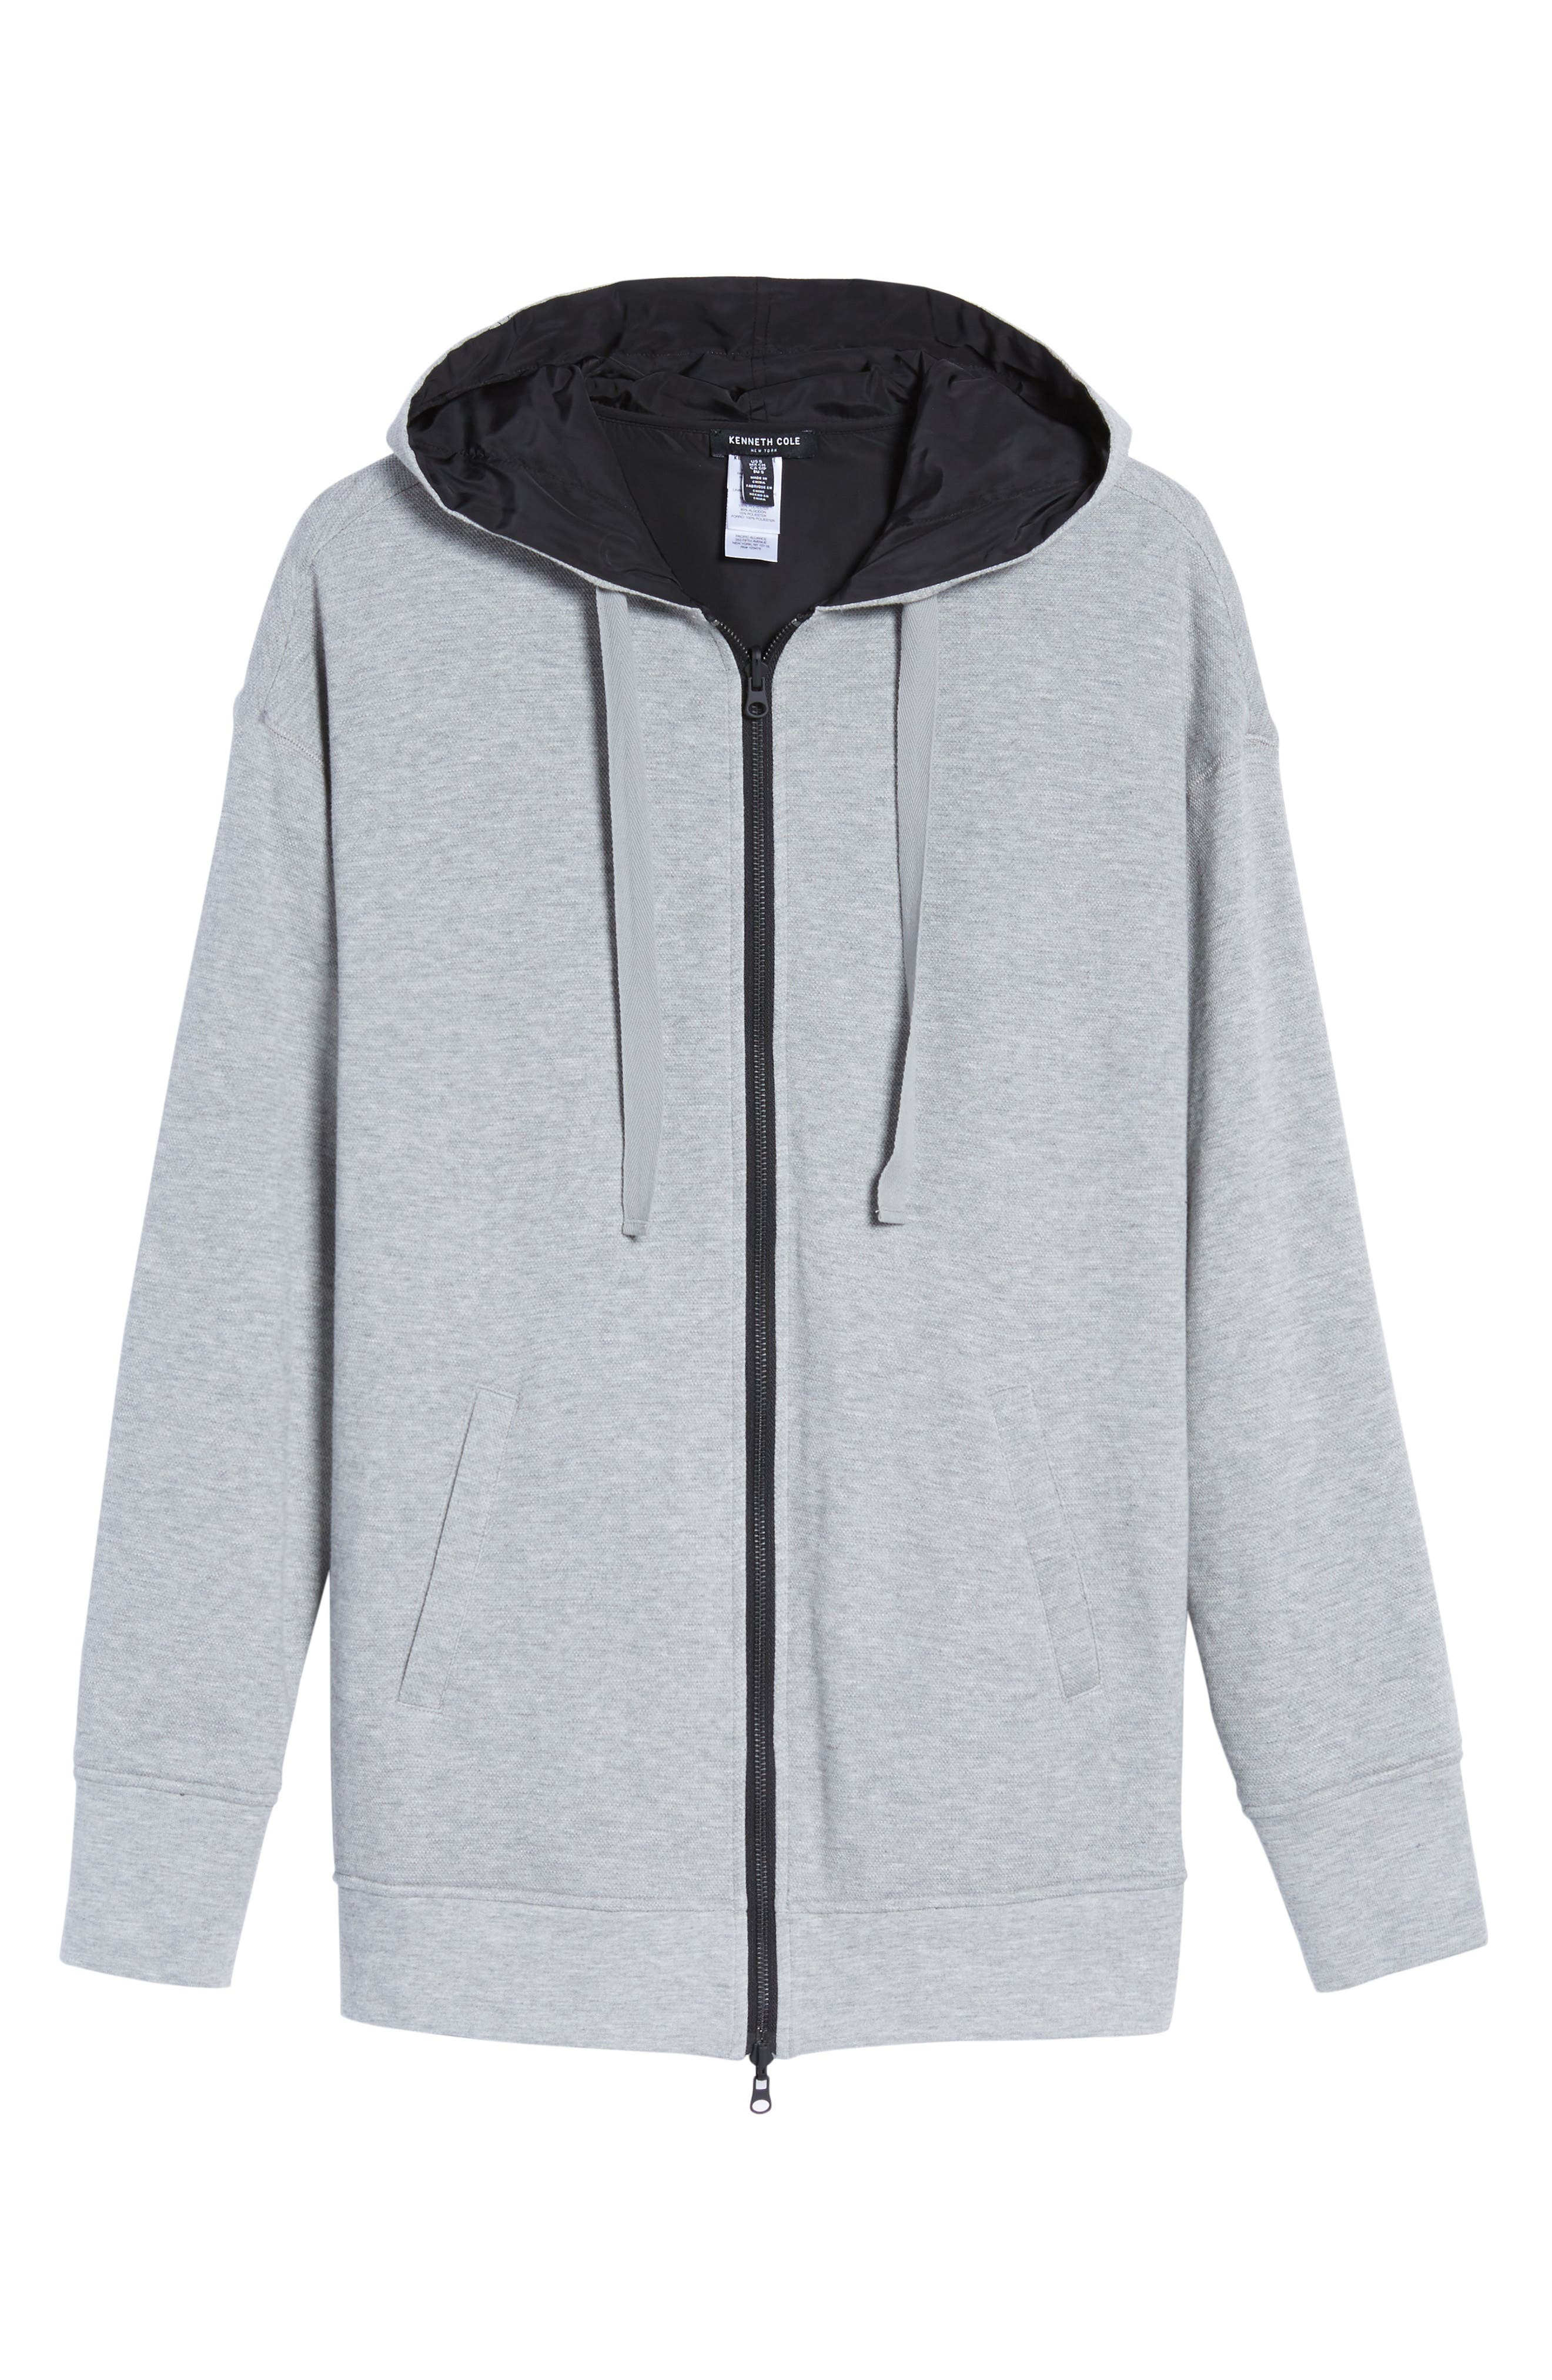 Reversible Graphic Hoodie,                             Alternate thumbnail 6, color,                             Heather Grey